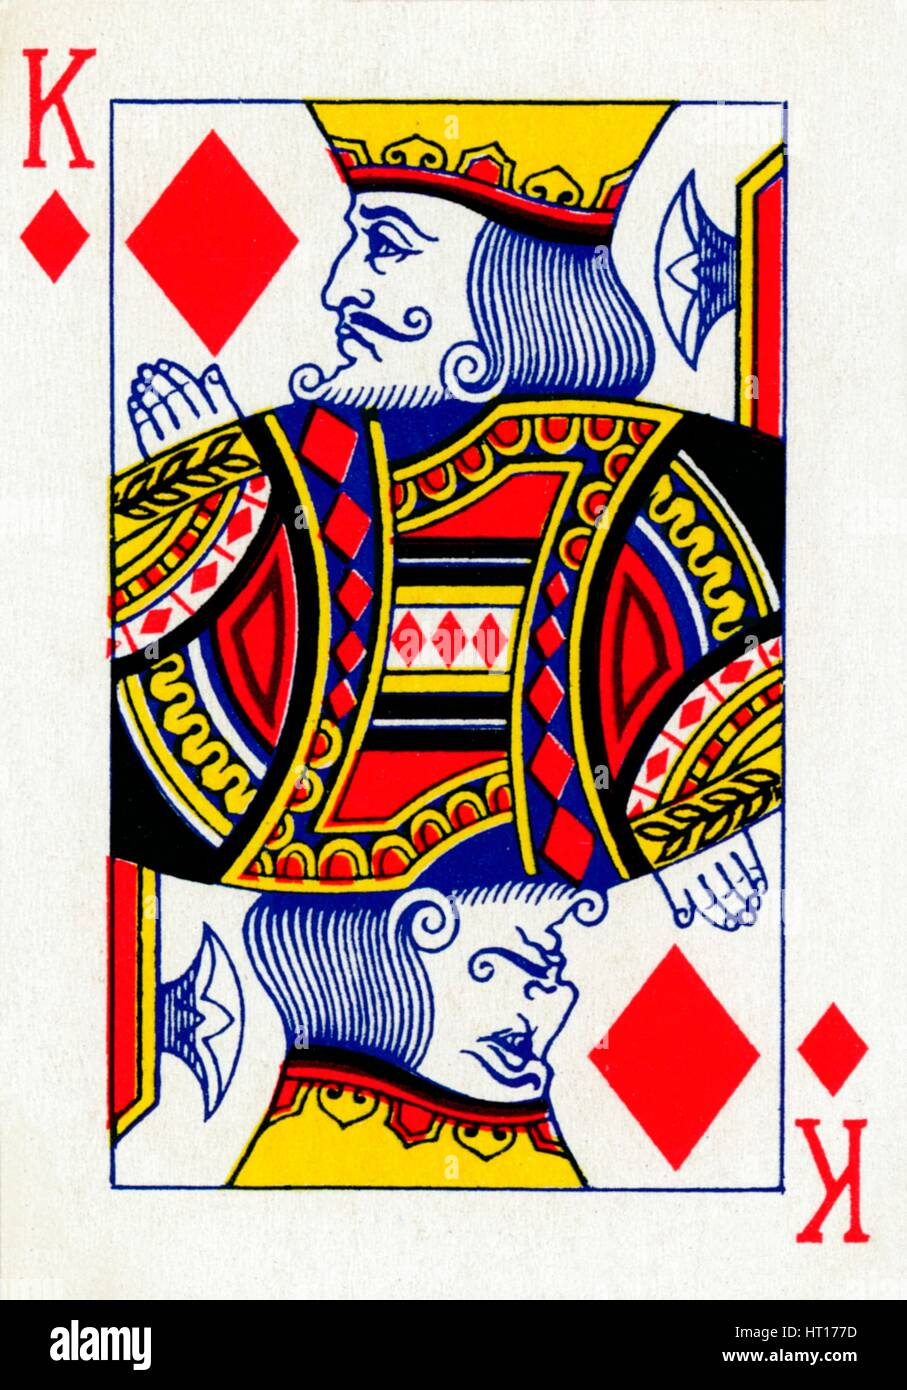 king of diamonds from a deck of goodall amp son ltd playing